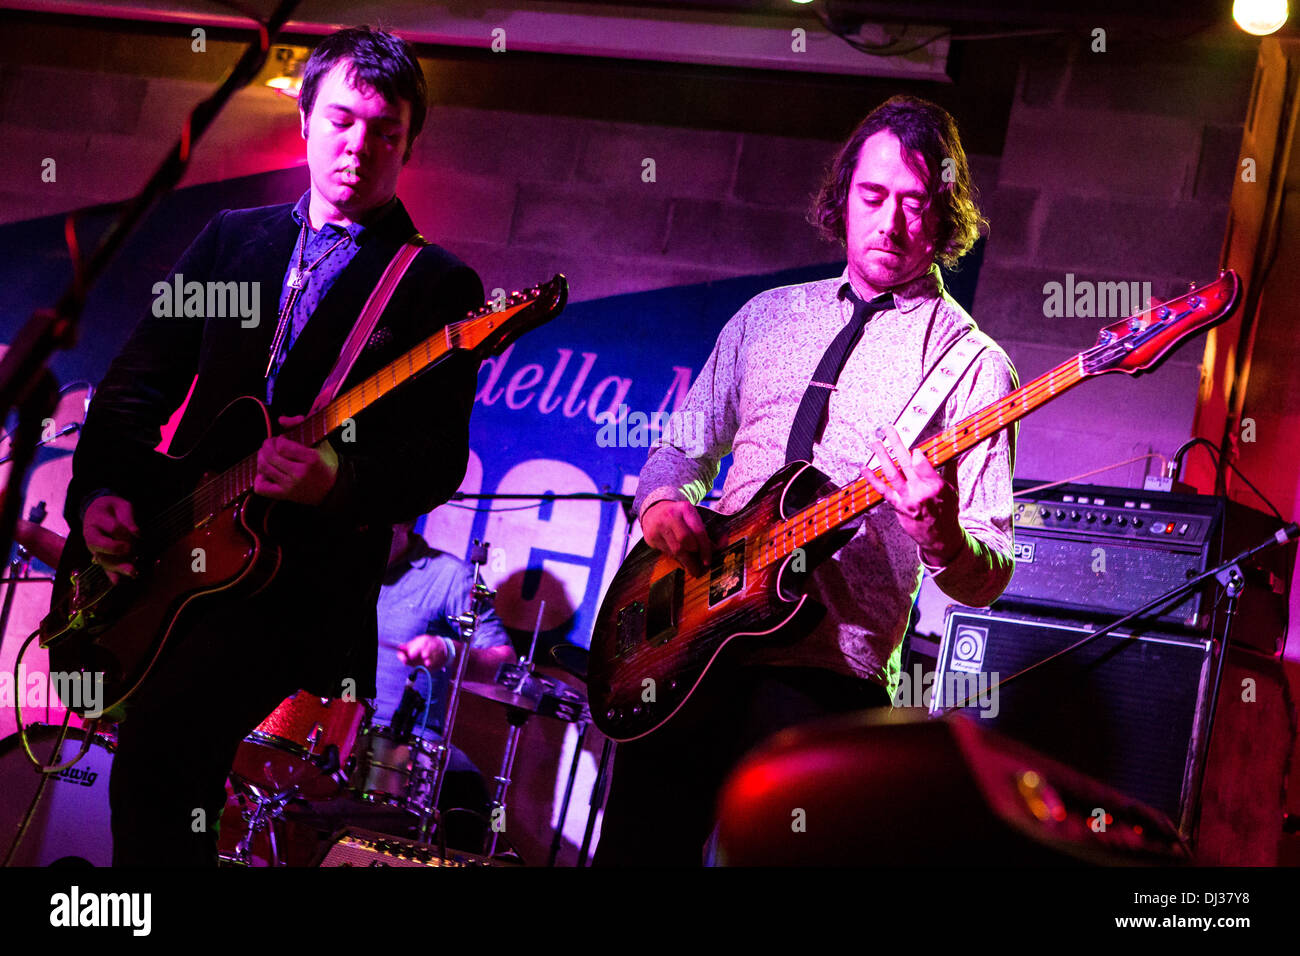 Milan Italy. 19th November 2013. The American indie-rock band CAVEMAN performs live at the Salumeria Della Musica Stock Photo